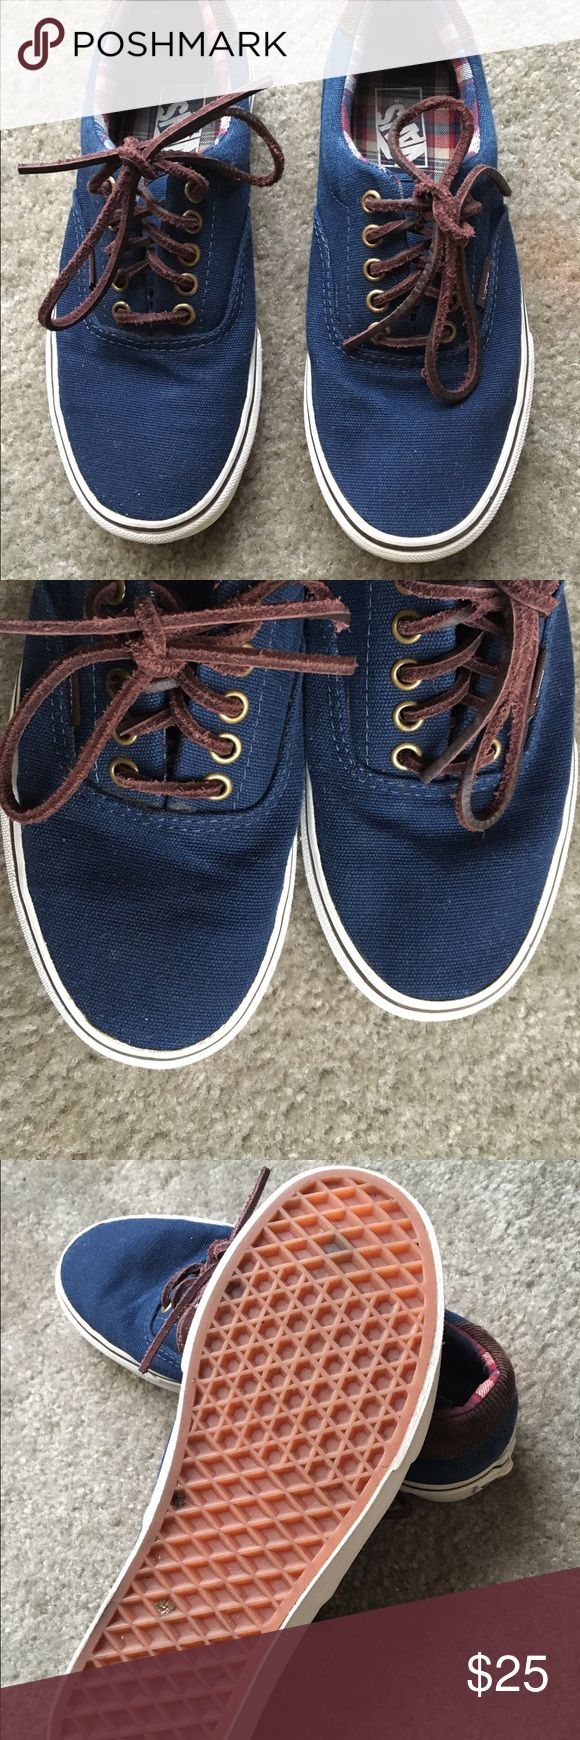 Men's VANS tennis shoes size 6.5 In excellent used used once leather laces comes with original box ( the box is a little beat up from storage but in good condition) Vans Shoes Athletic Shoes